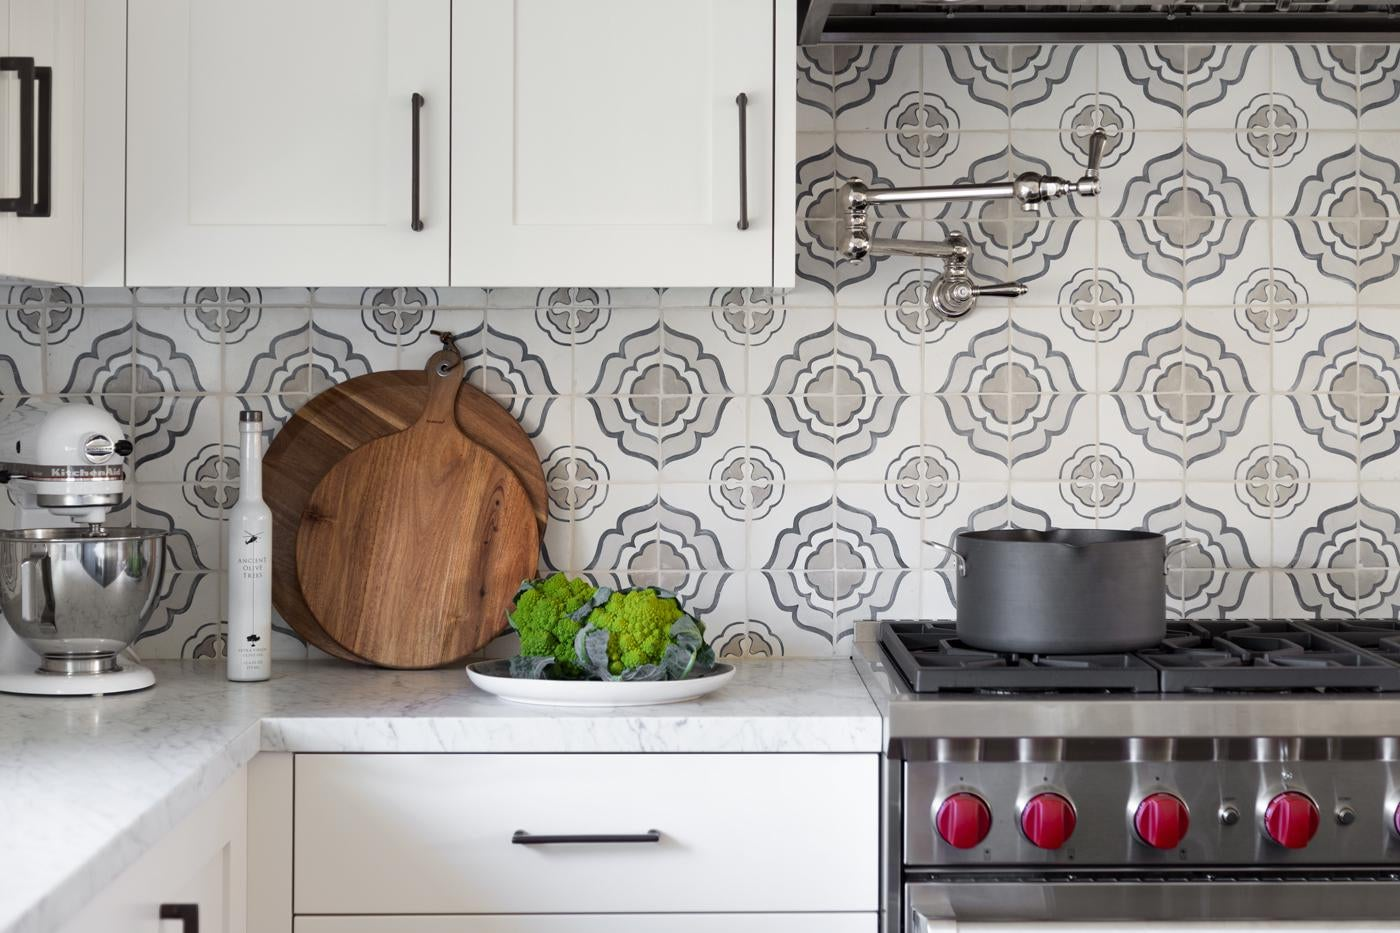 Classic White Kitchen with Hand Painted Tiles